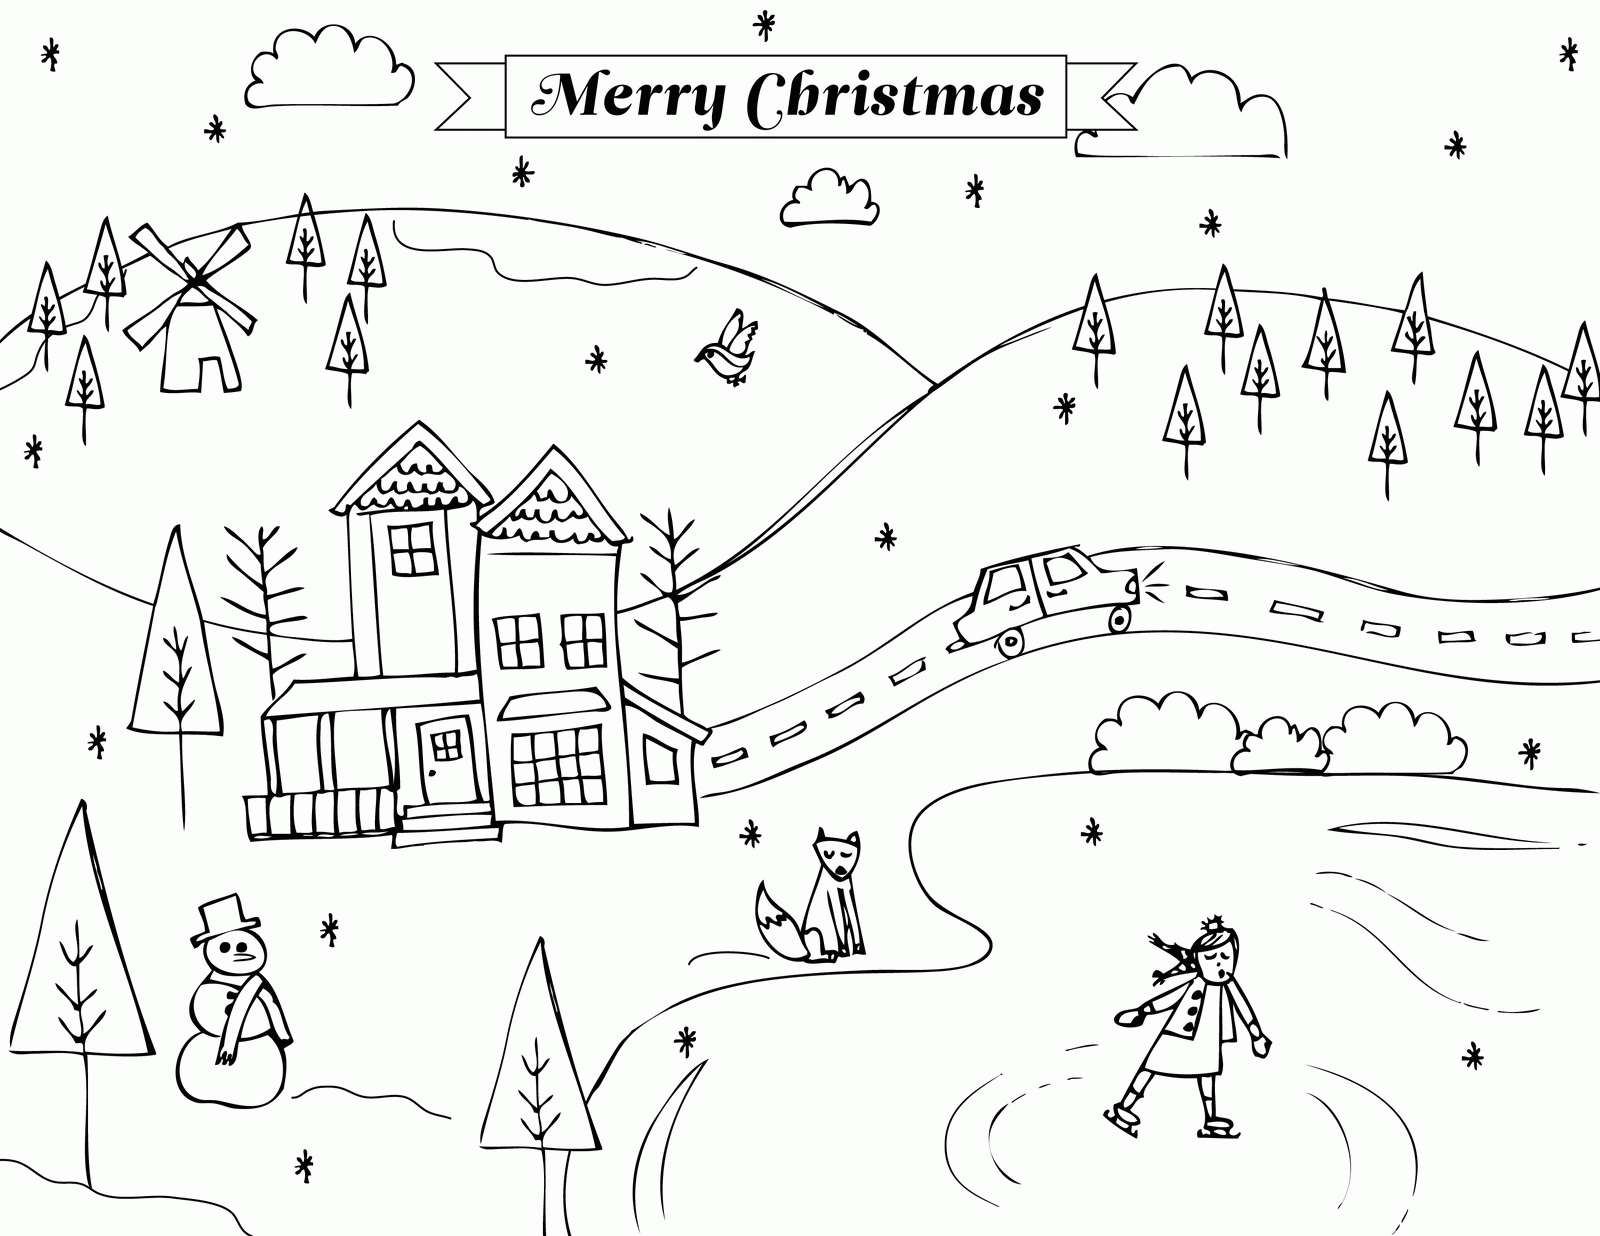 Winter Scene Coloring Pages  to Print 8j - Save it to your computer